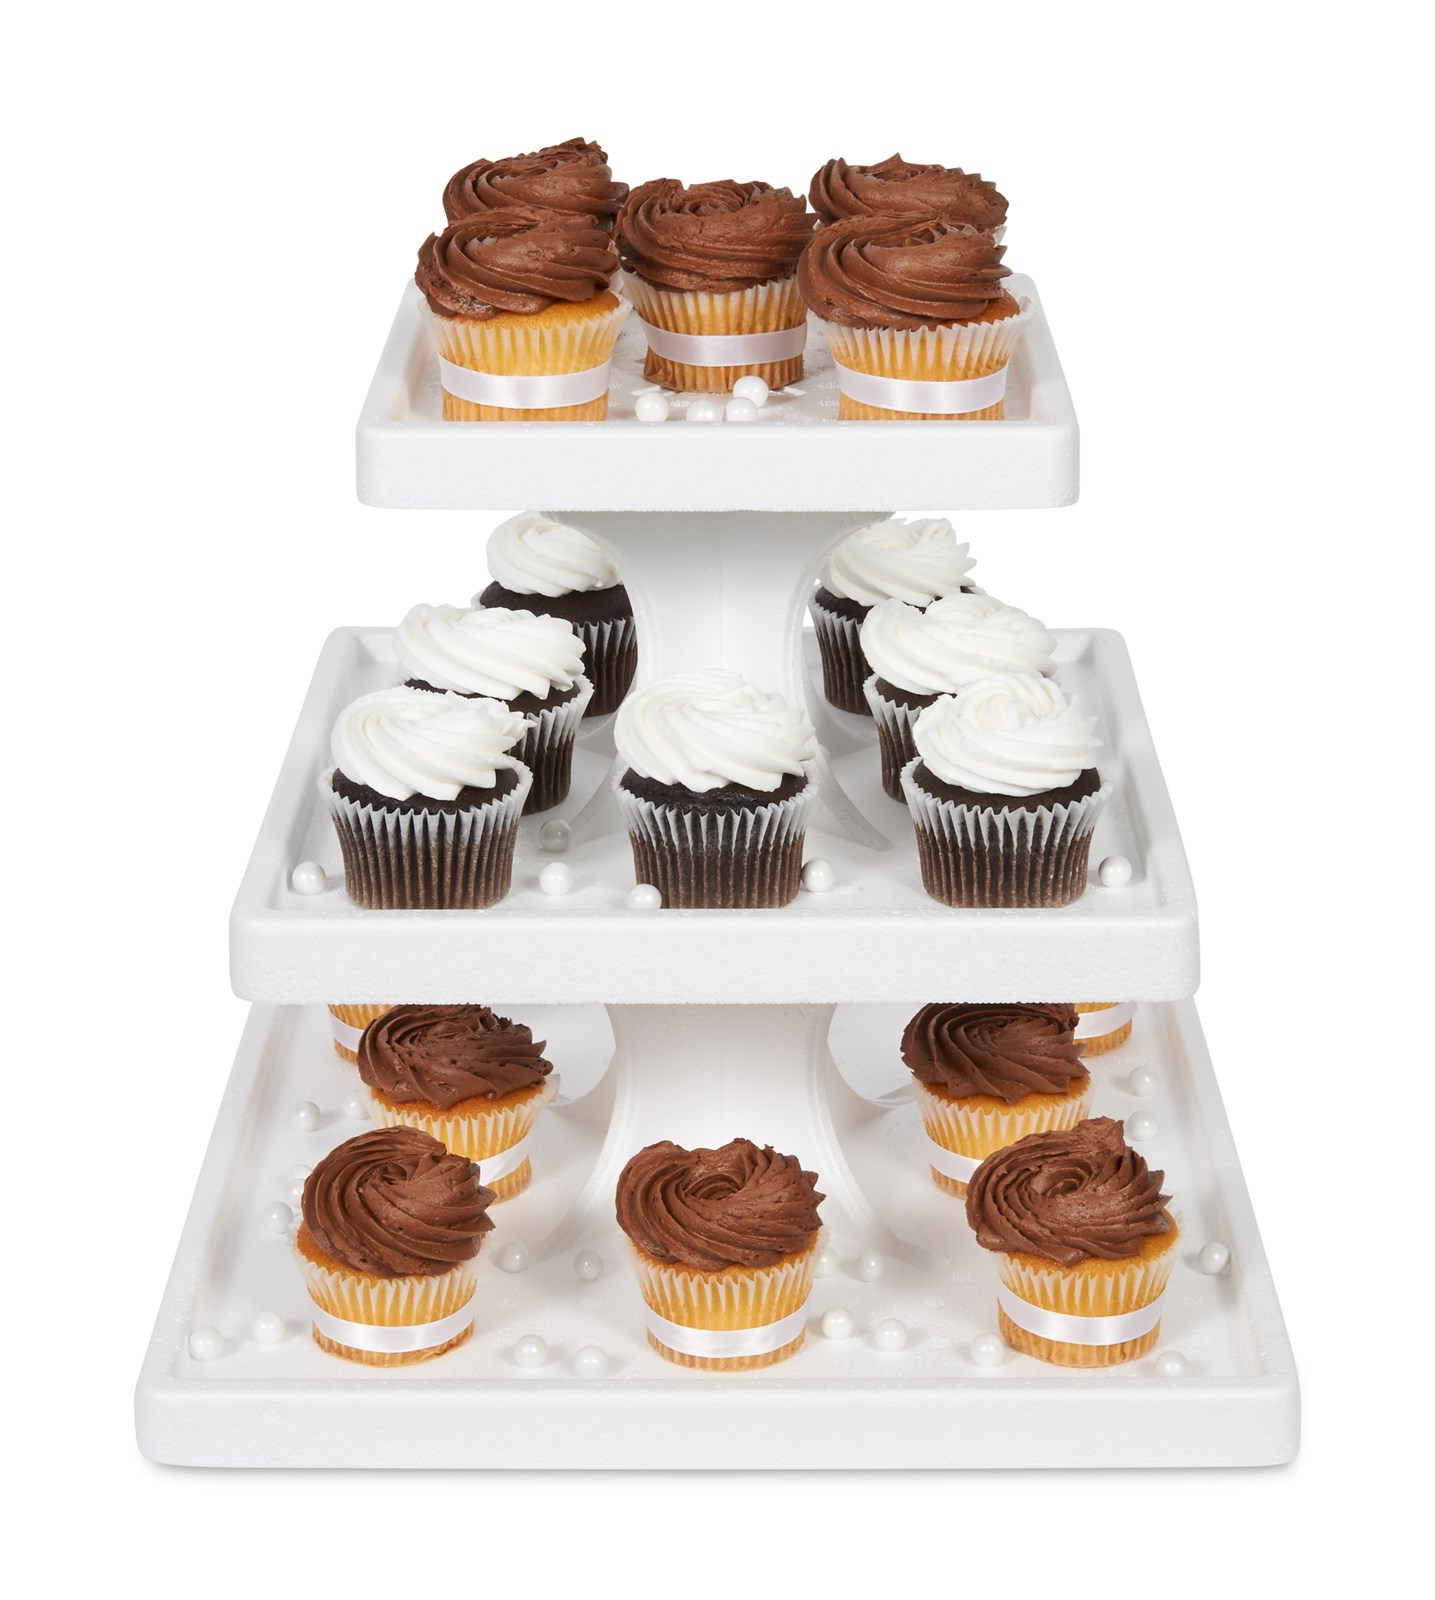 Square Towering Tiers Cake Stand